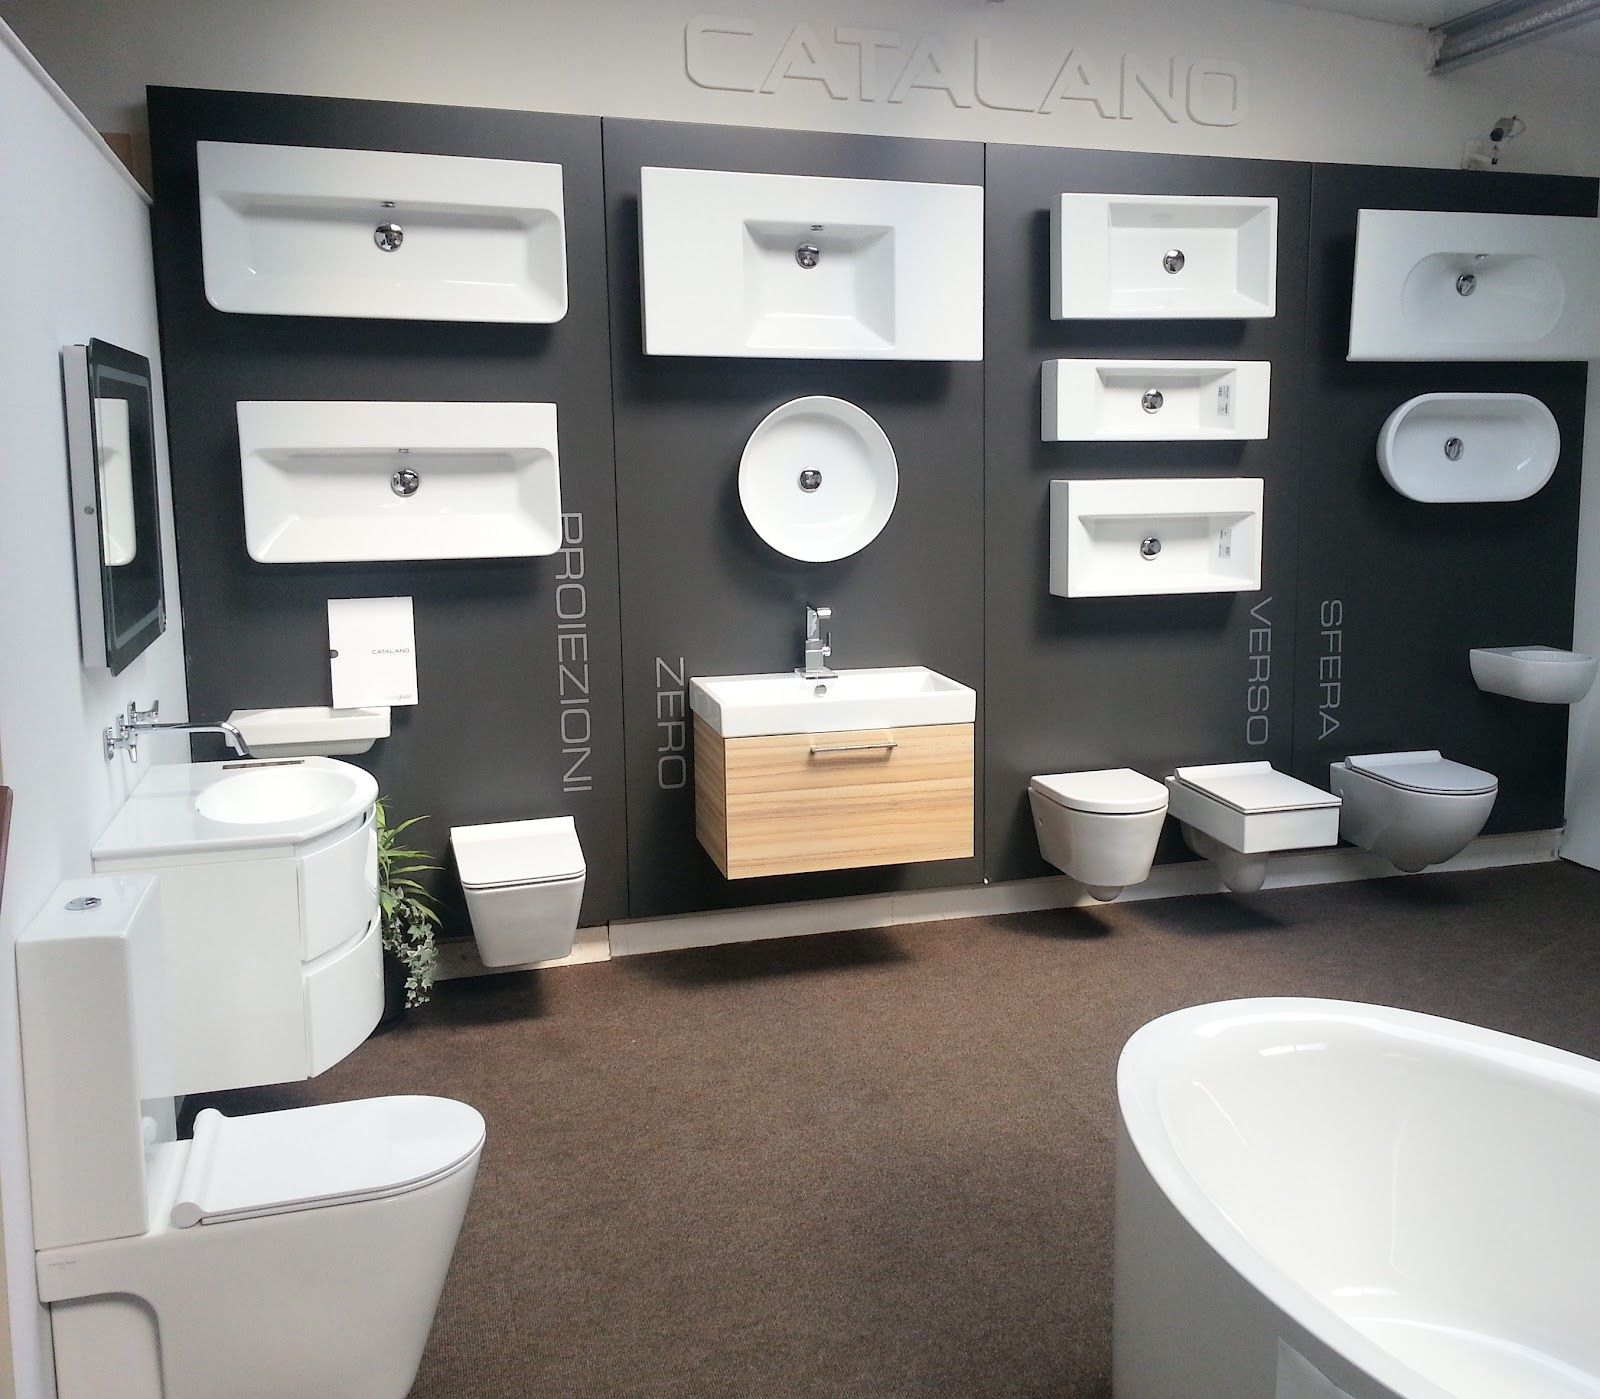 Bathroom Showrooms Essex bathroom-showroom-perth | bathroom showroom perth | pinterest